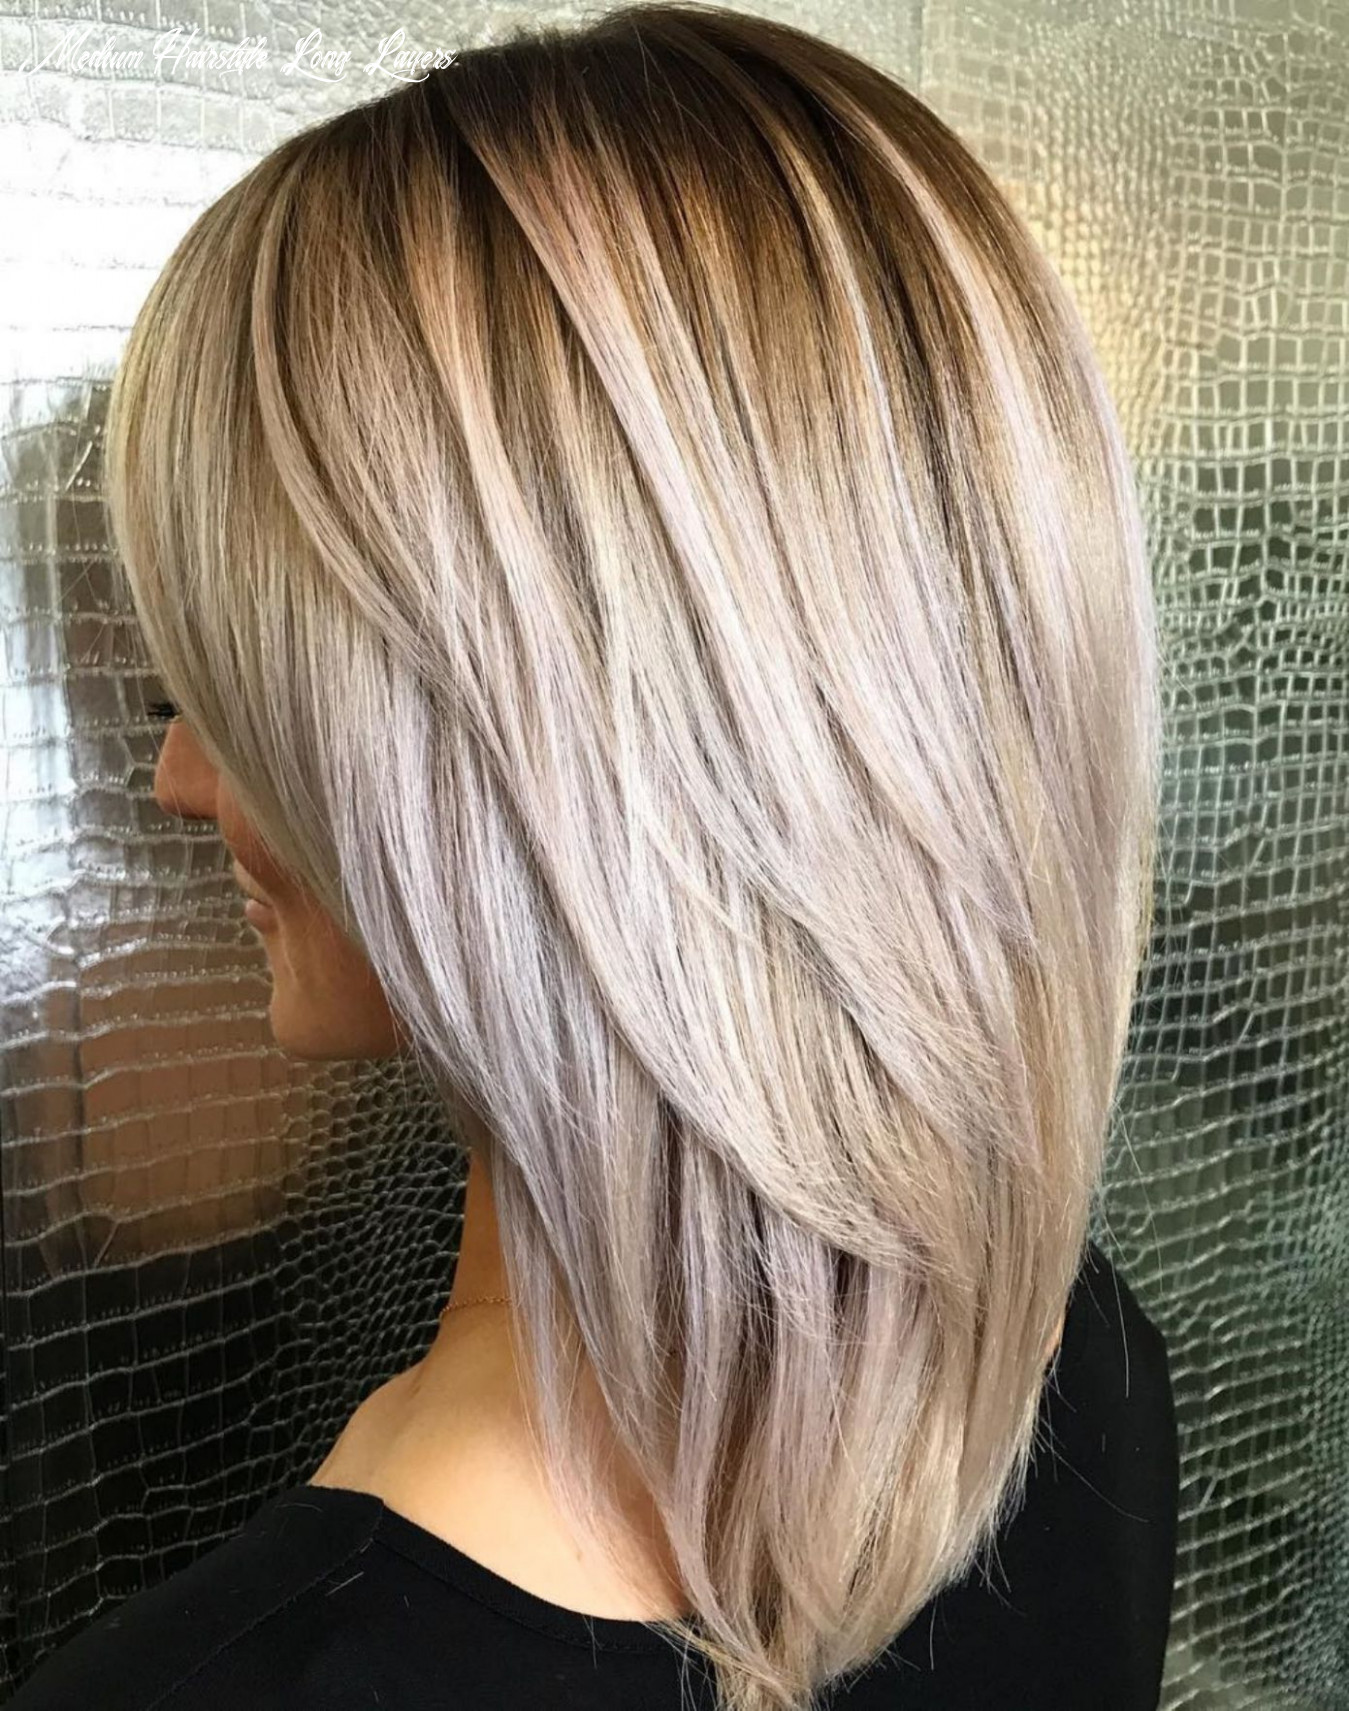 Pin on hare medium hairstyle long layers